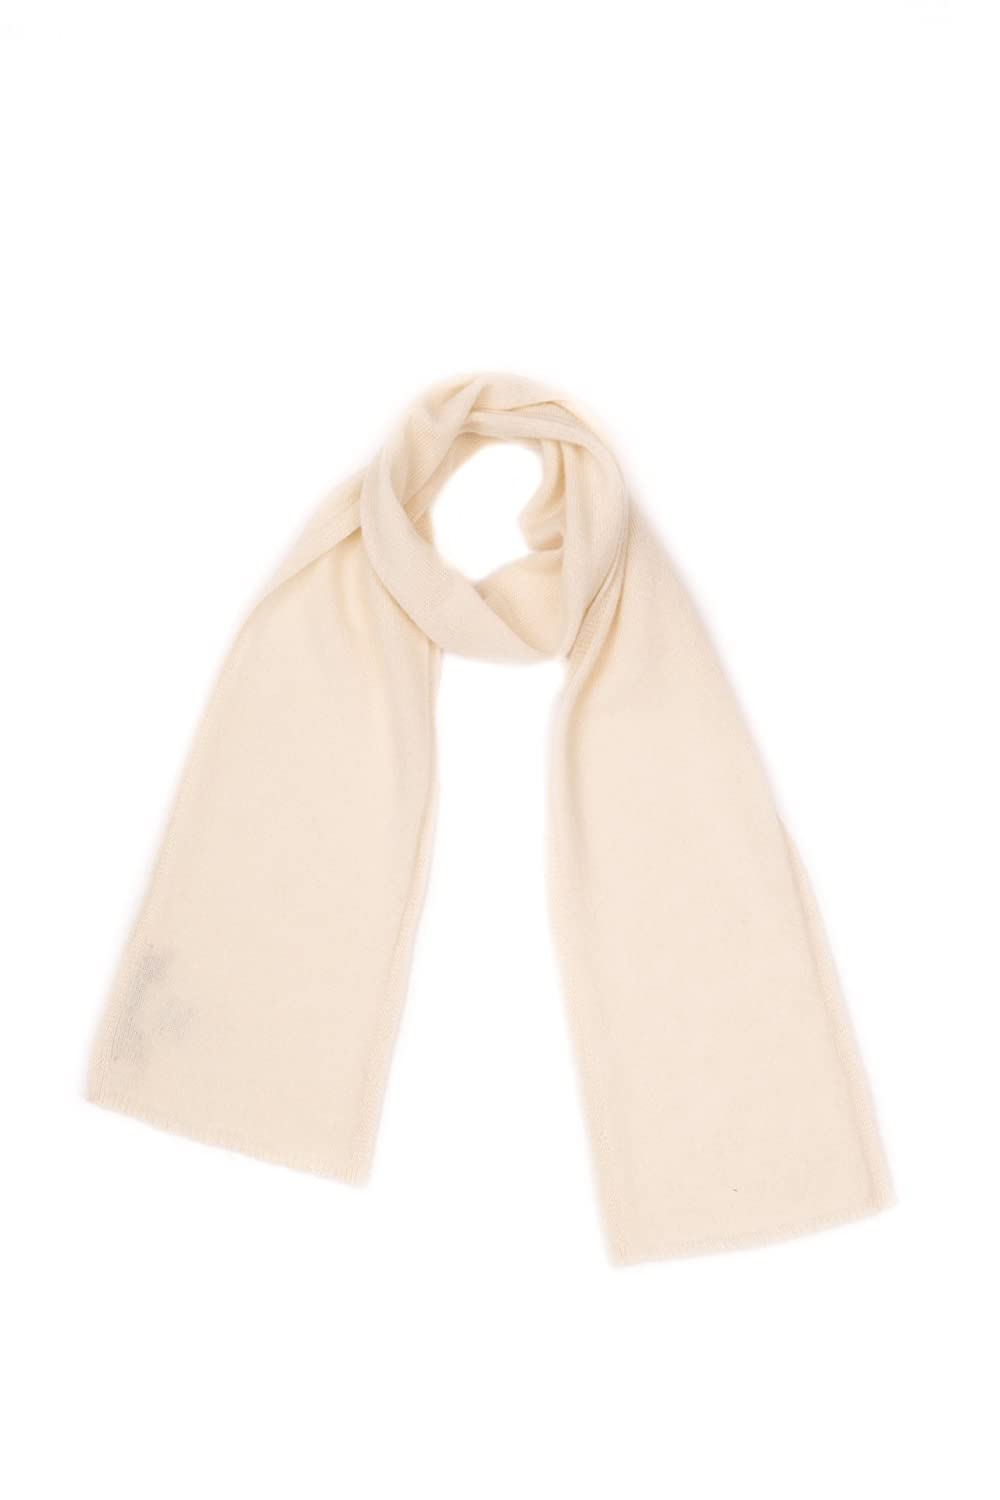 Mini Scarf 100/% cashmere Dalle Piane Cashmere Made in Italy Woman//Man